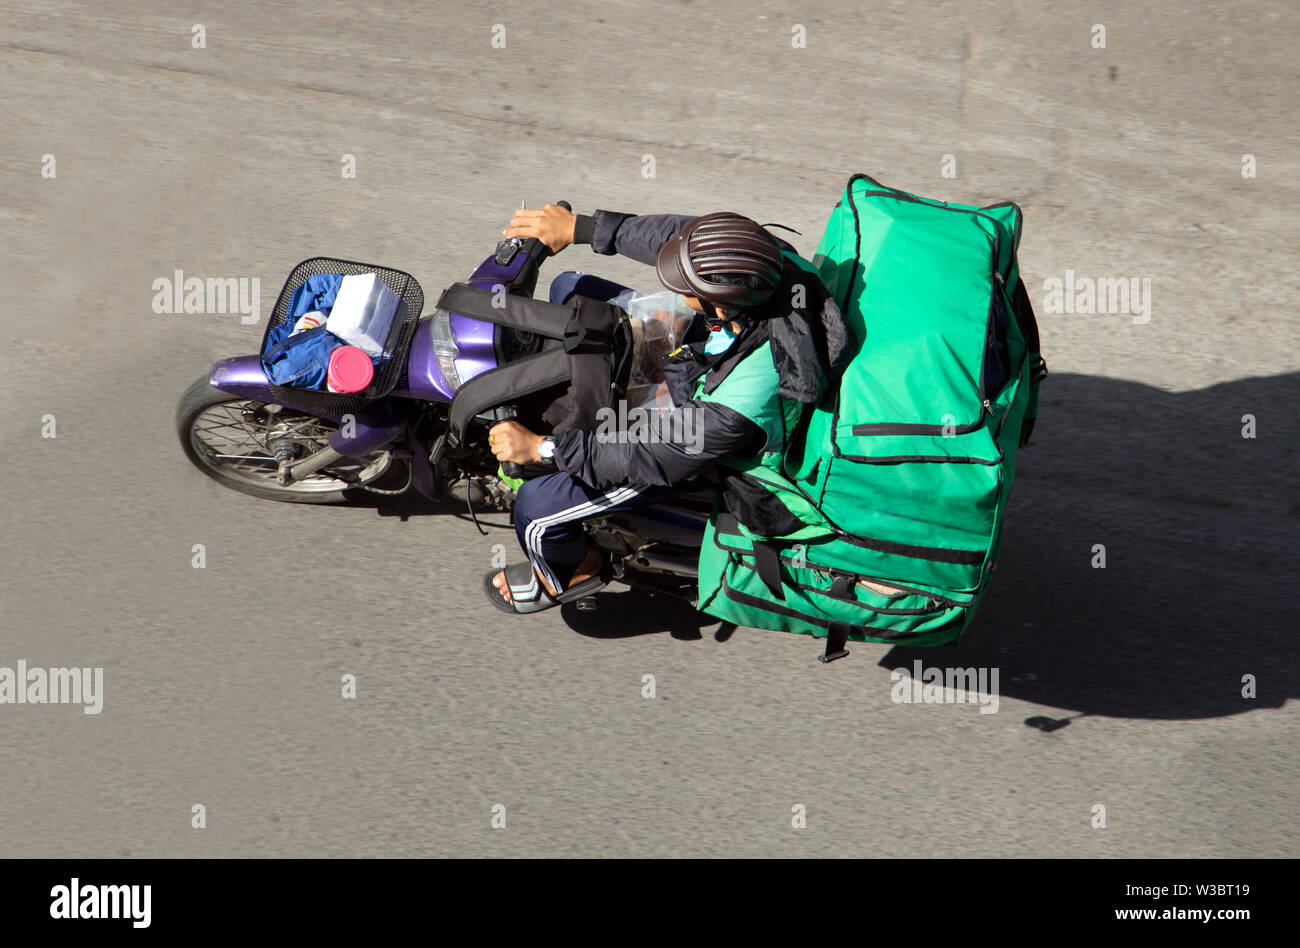 Delivery of consignments on motorbike. Motorcyclist rides with delivery in the many green bags on street Saigon city, Vietnam. - Stock Image